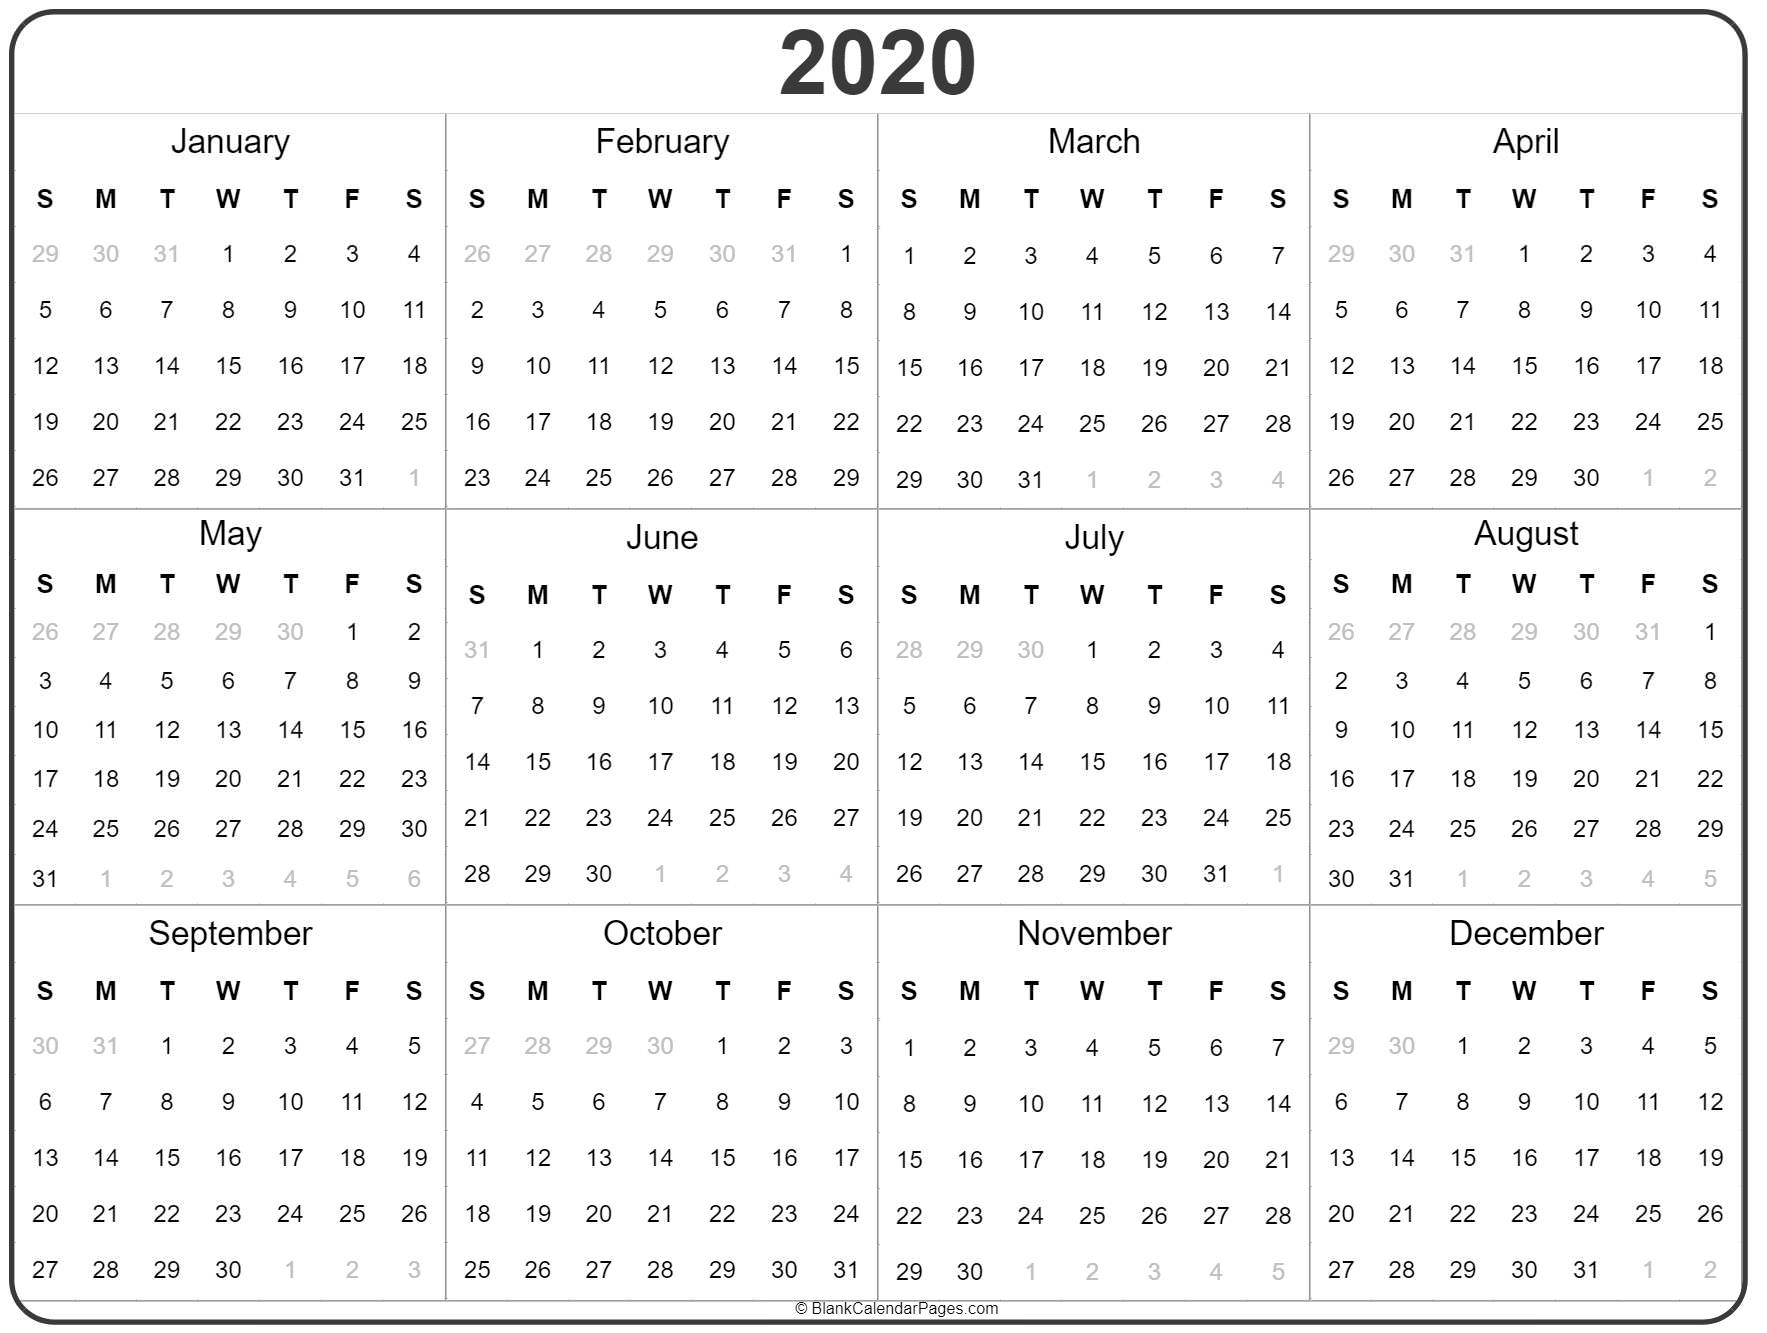 2020 Year Calendar Template - Colona.rsd7 Calendar Template That Can Be Wrote On